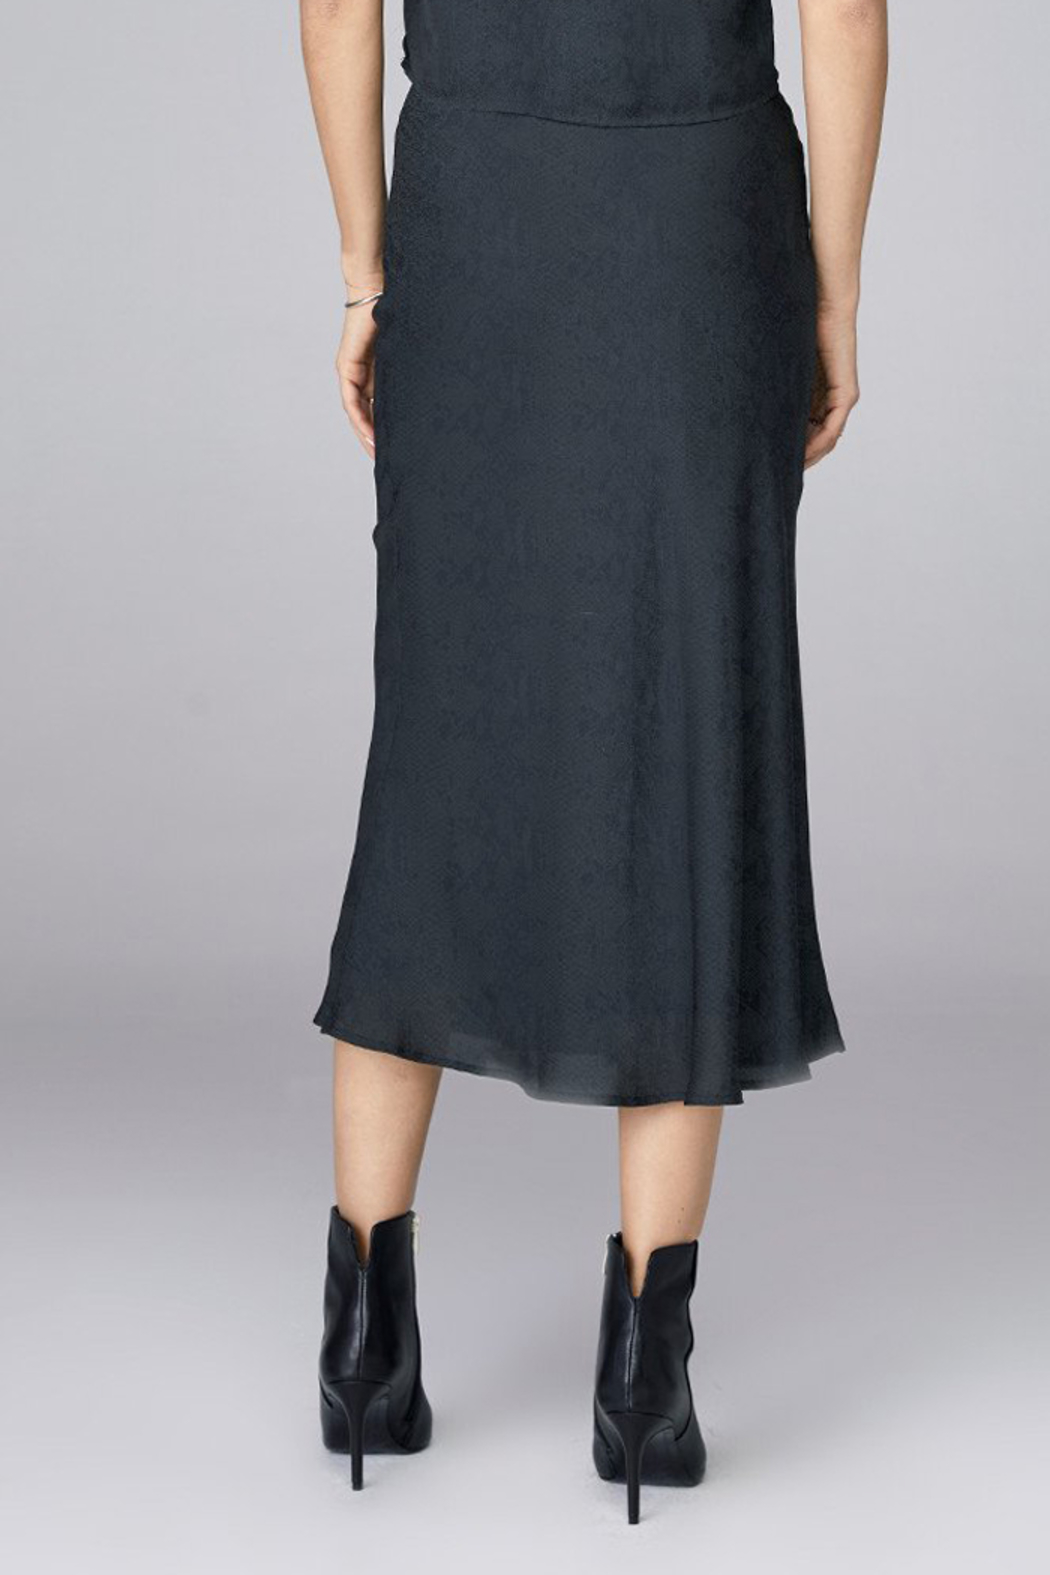 David Lerner  BIAS MIDI SKIRT - Front Full Image